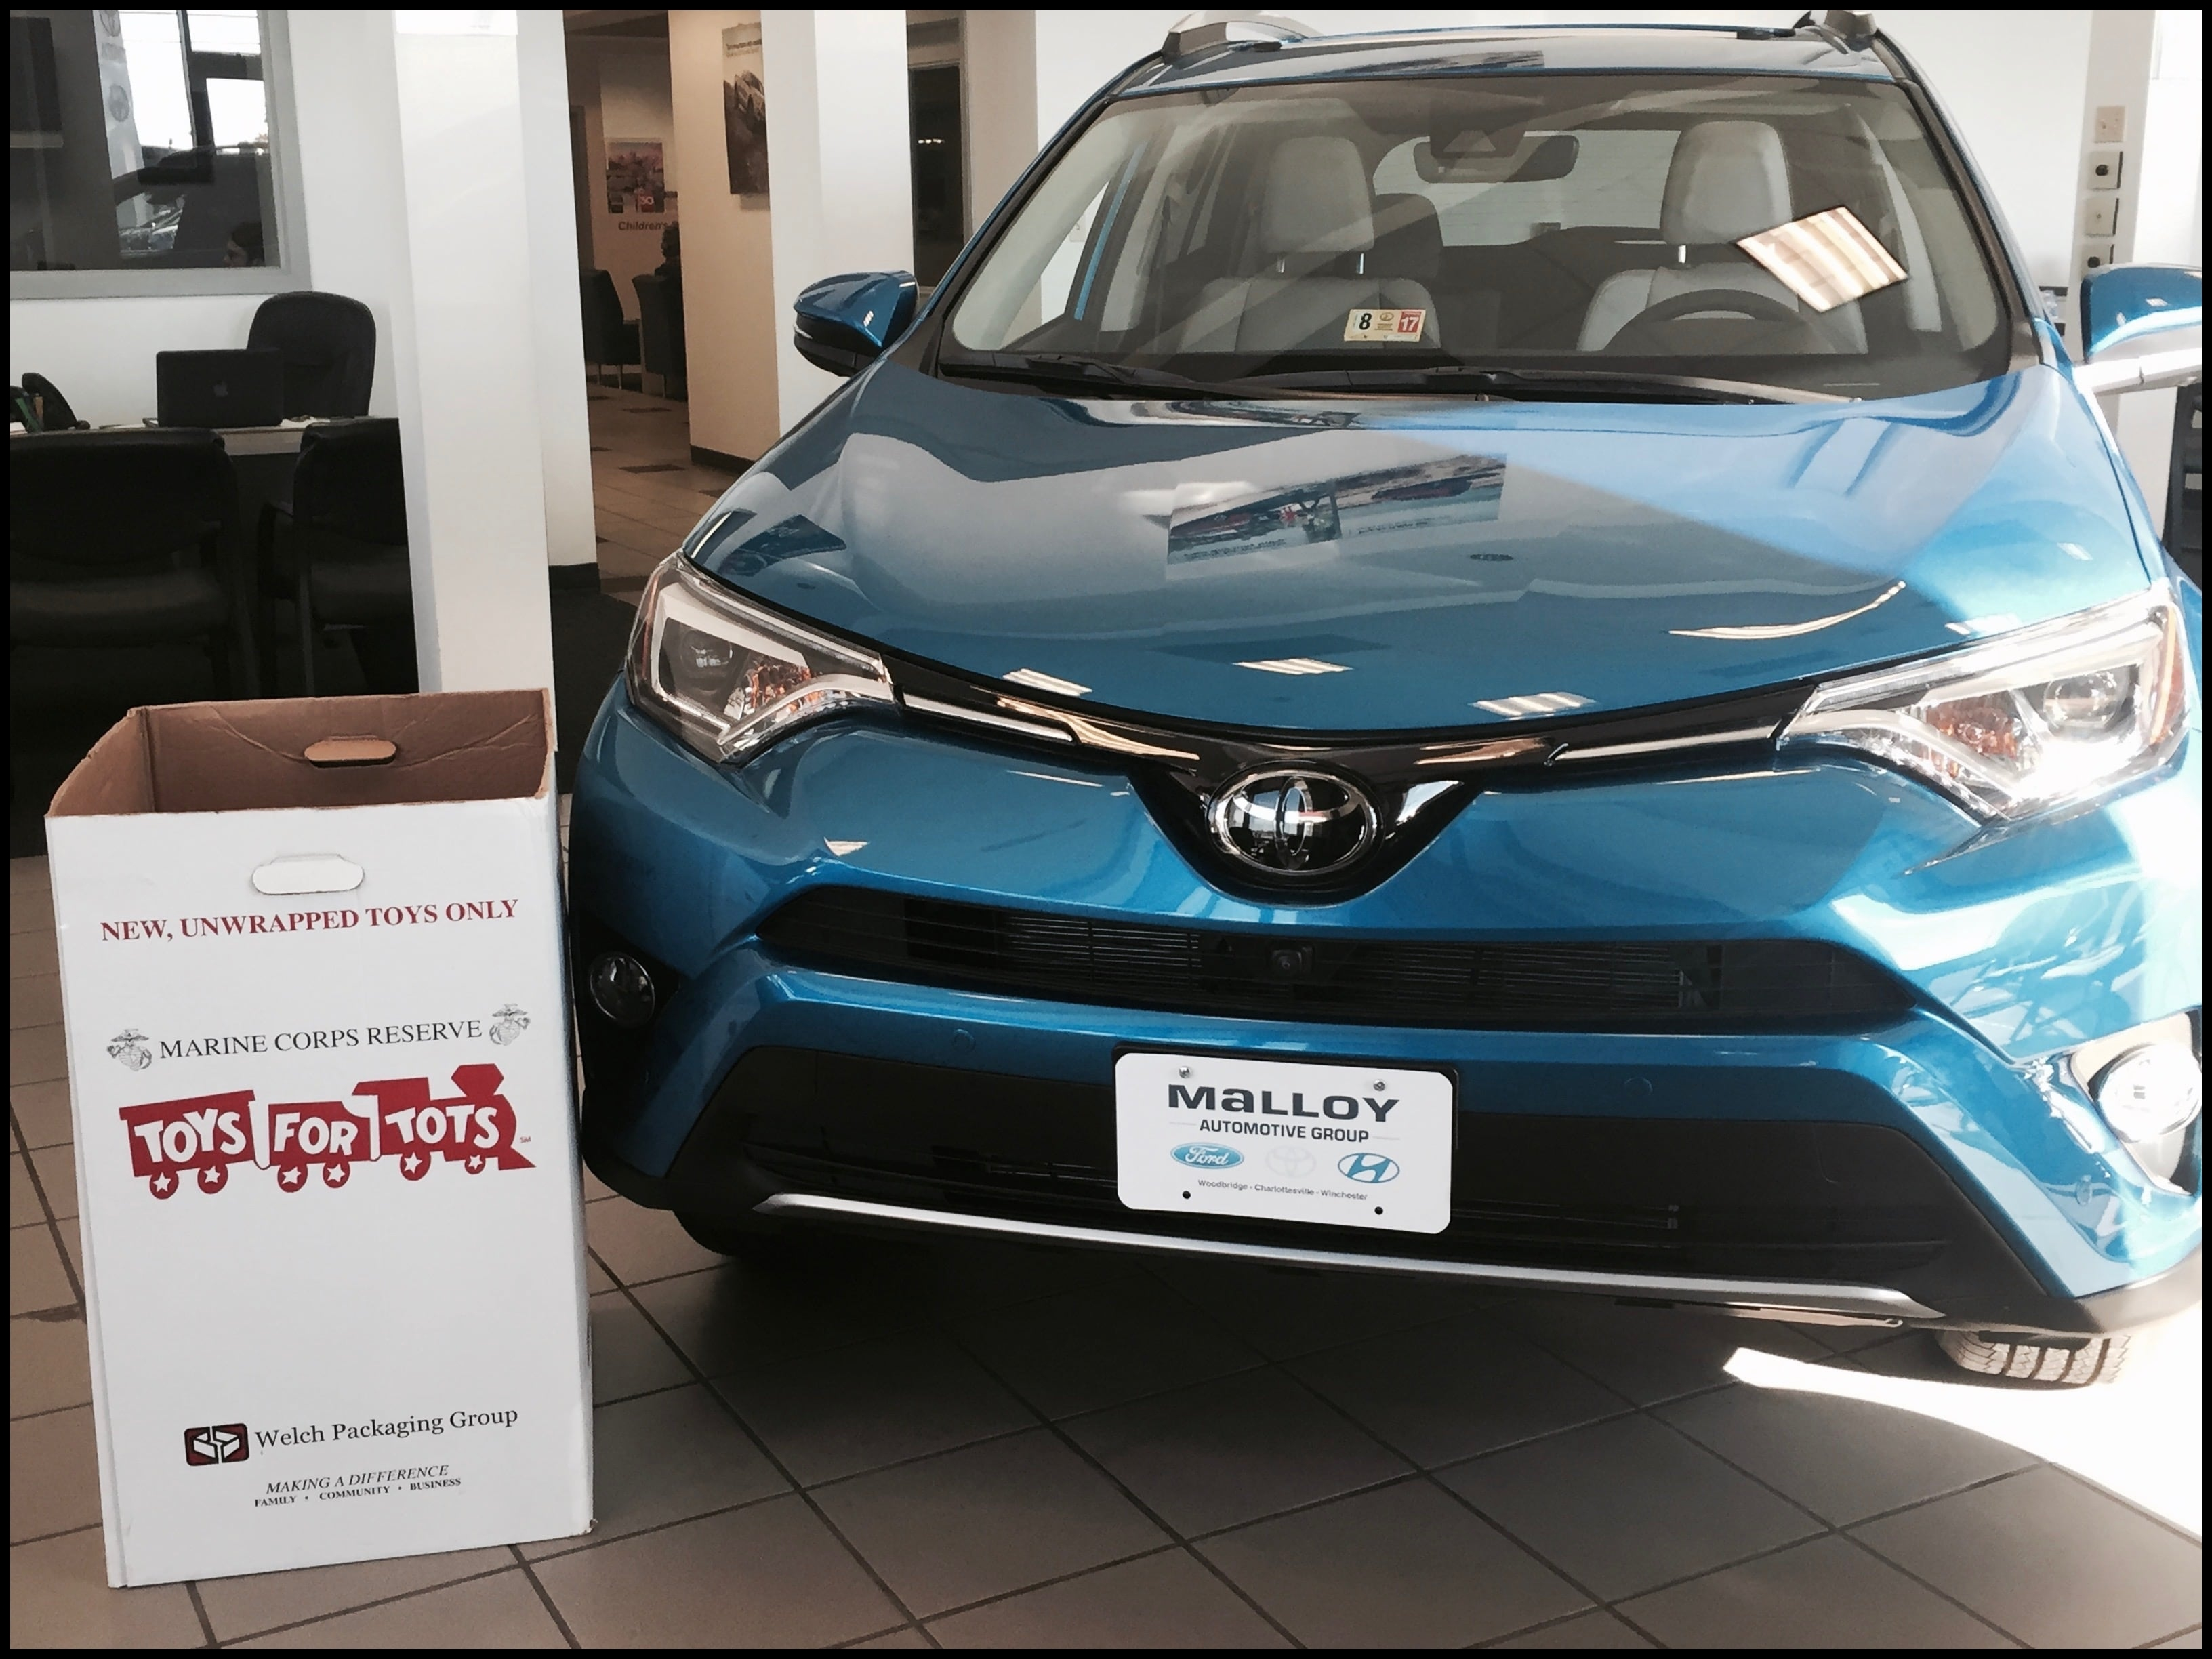 Toyota supports Toys for Tots by donating $5 000 to assist in delivering toys to deserving children To be a part of the movement please stop by Malloy